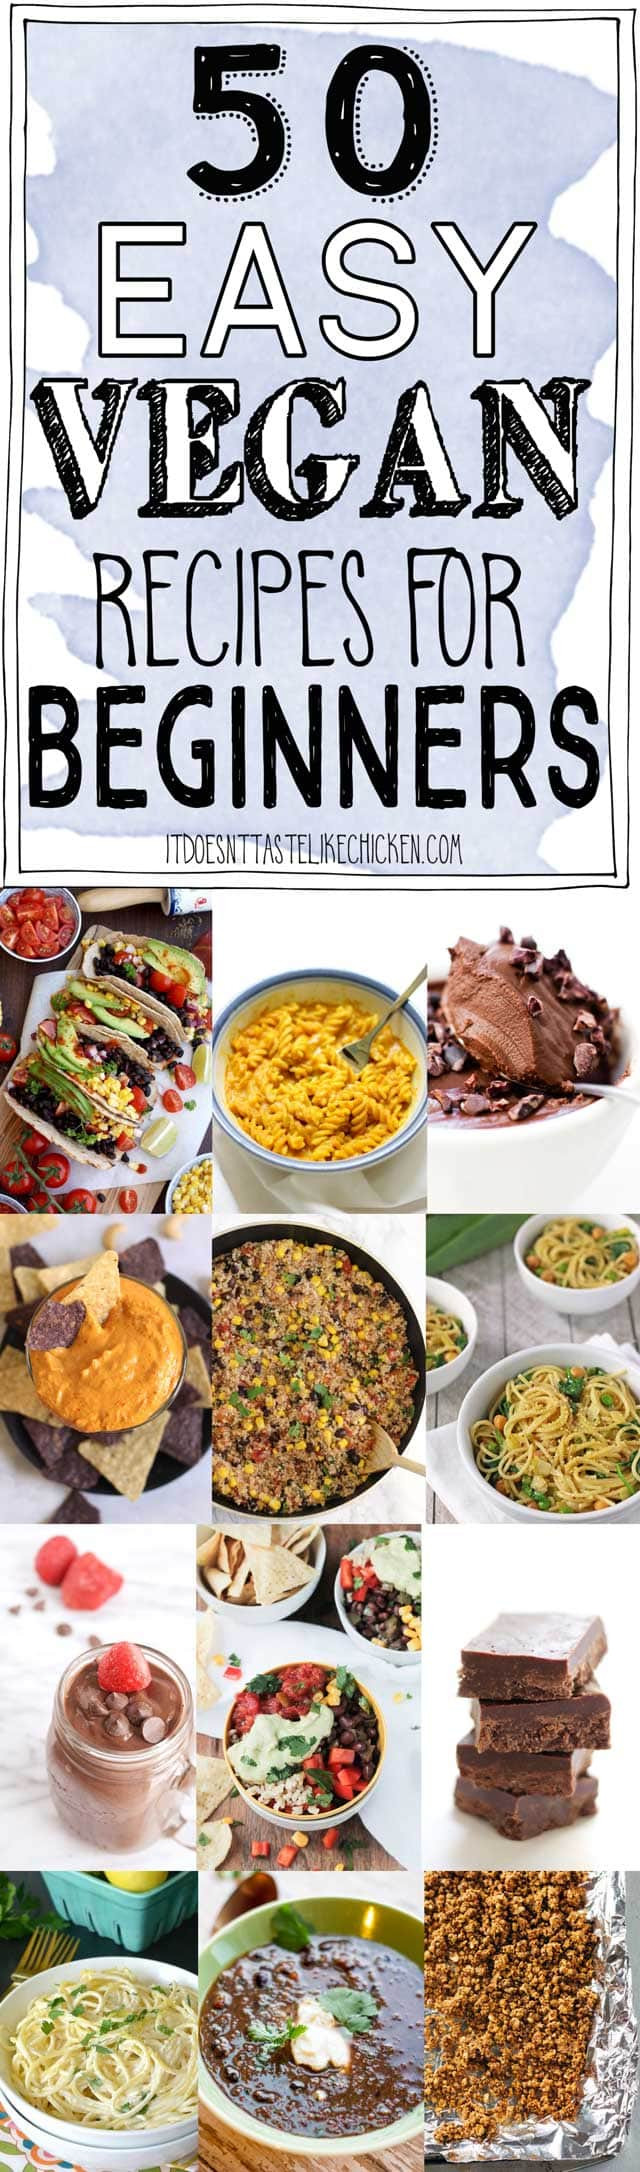 Quick And Easy Vegan Recipes  50 Easy Vegan Recipes for Beginners • It Doesn t Taste